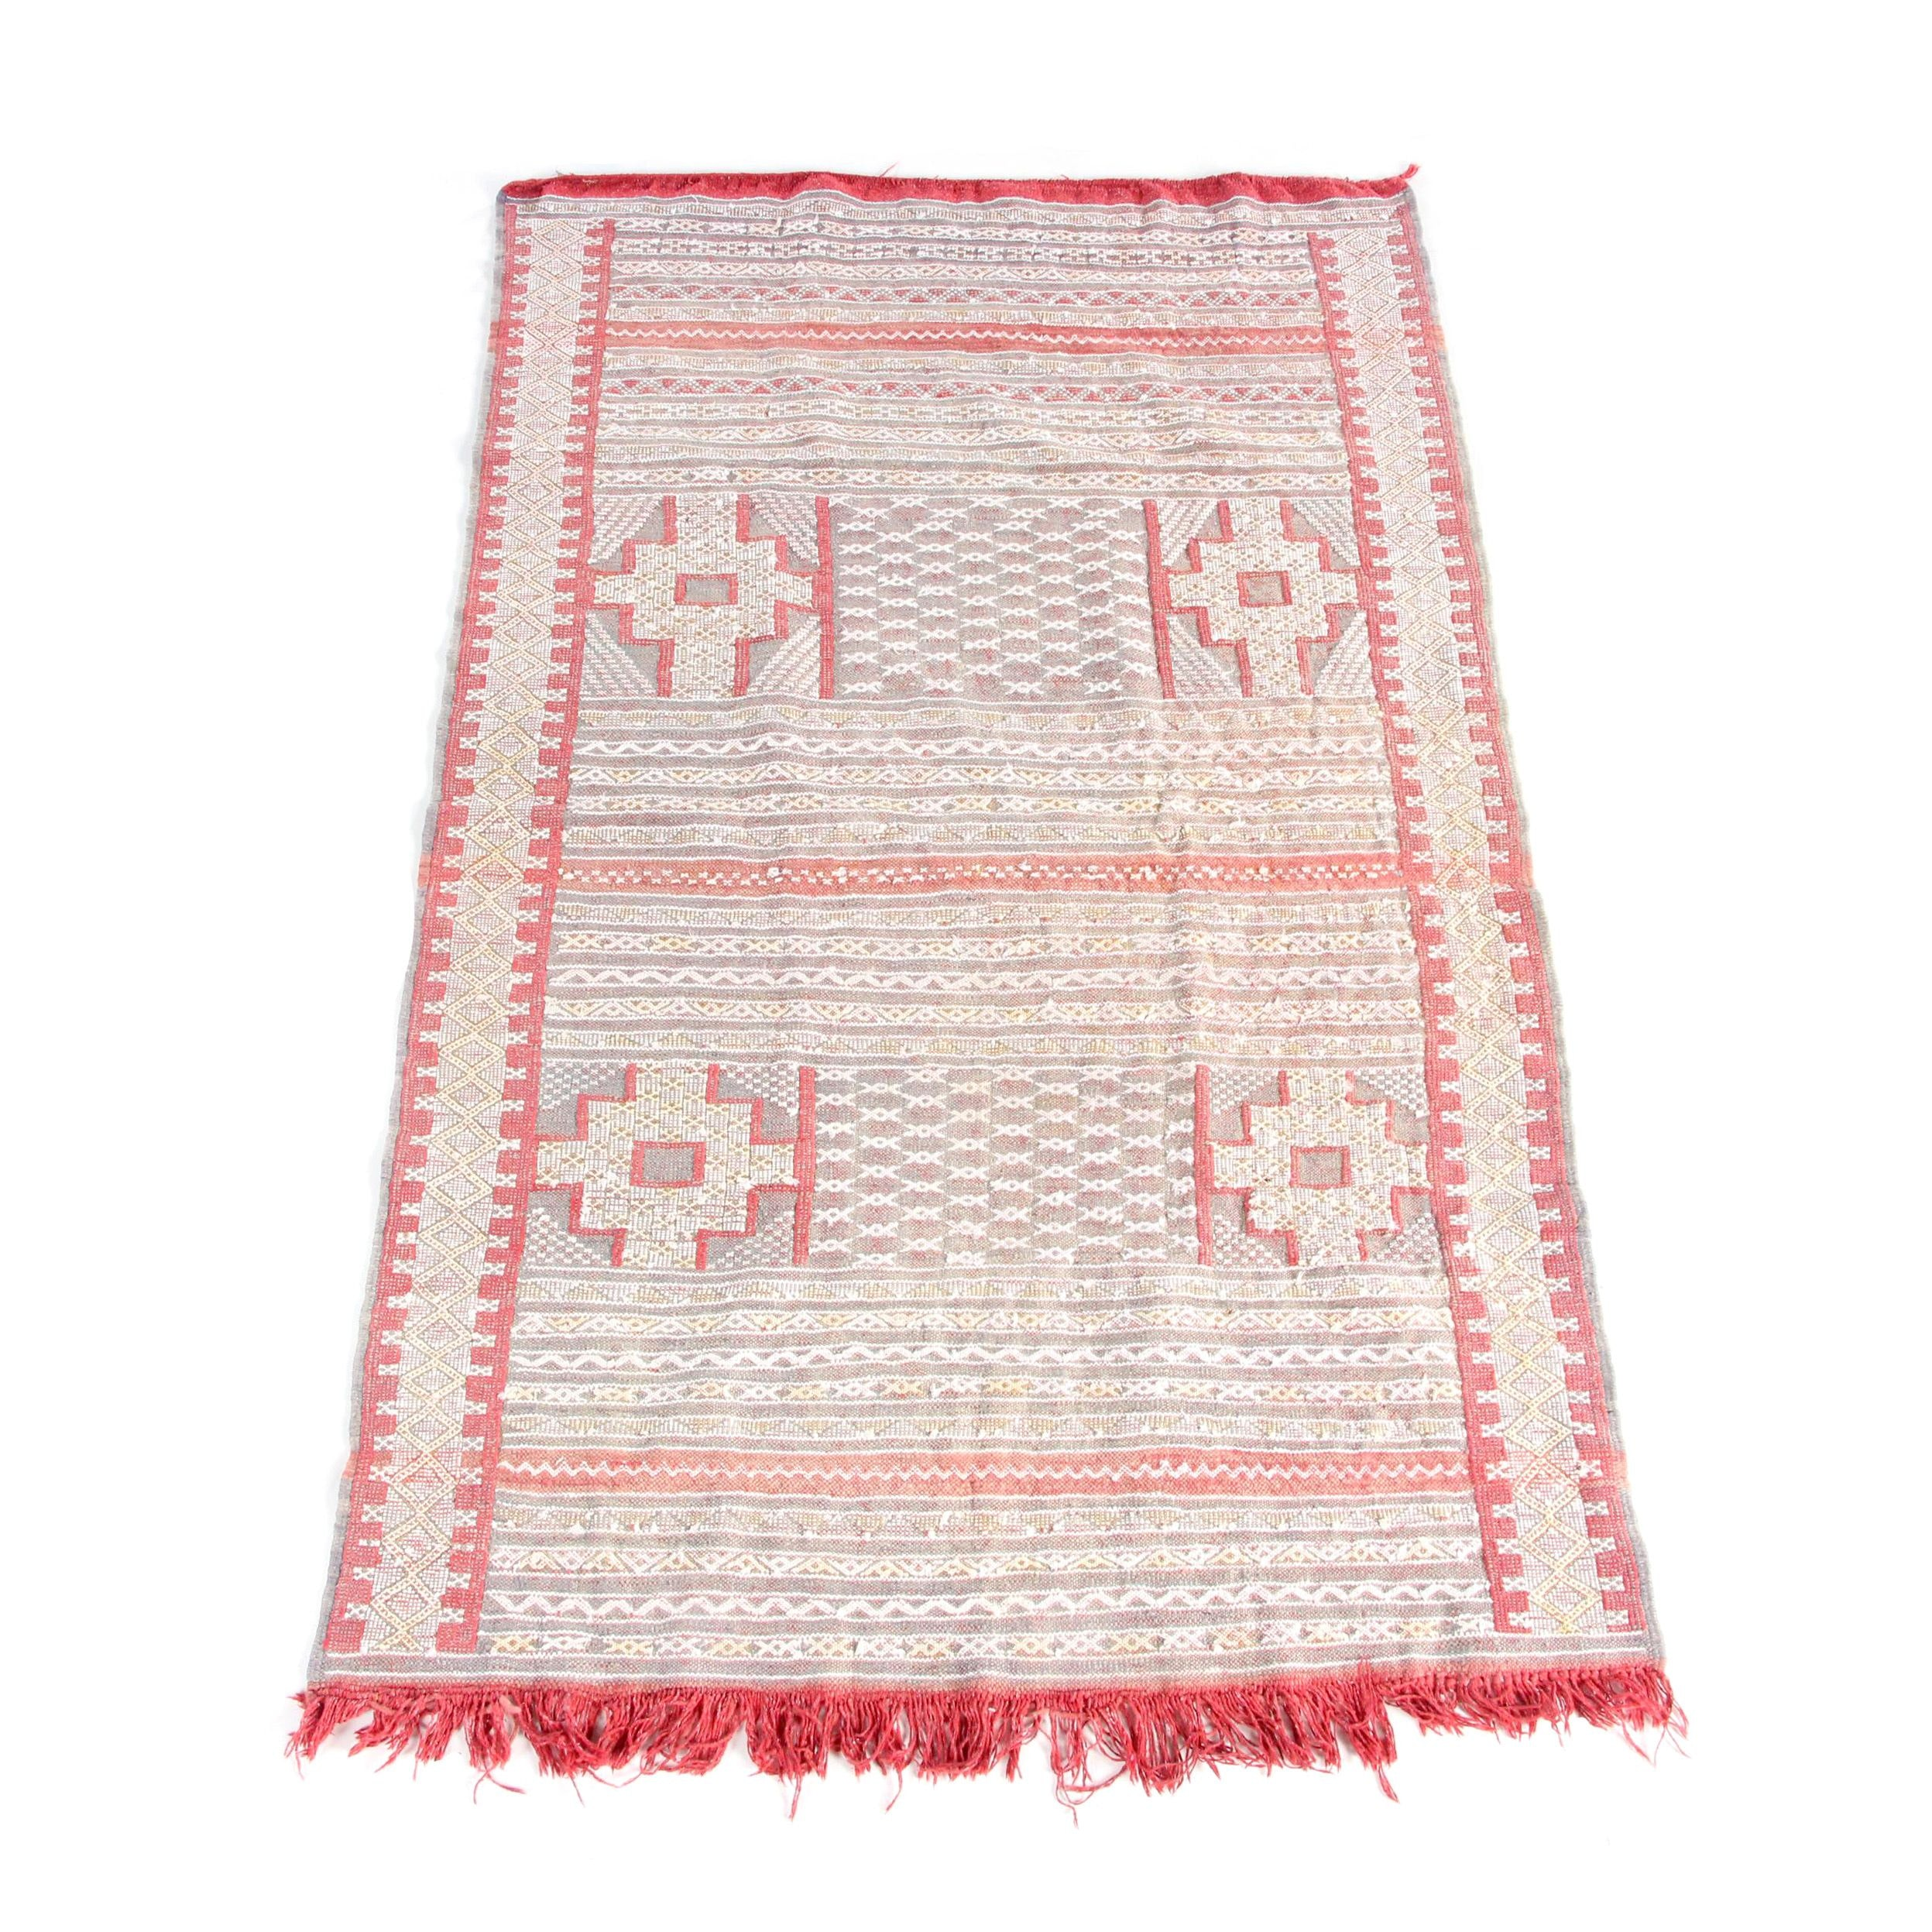 Handwoven and Embroidered Moroccan Wool Accent Rug